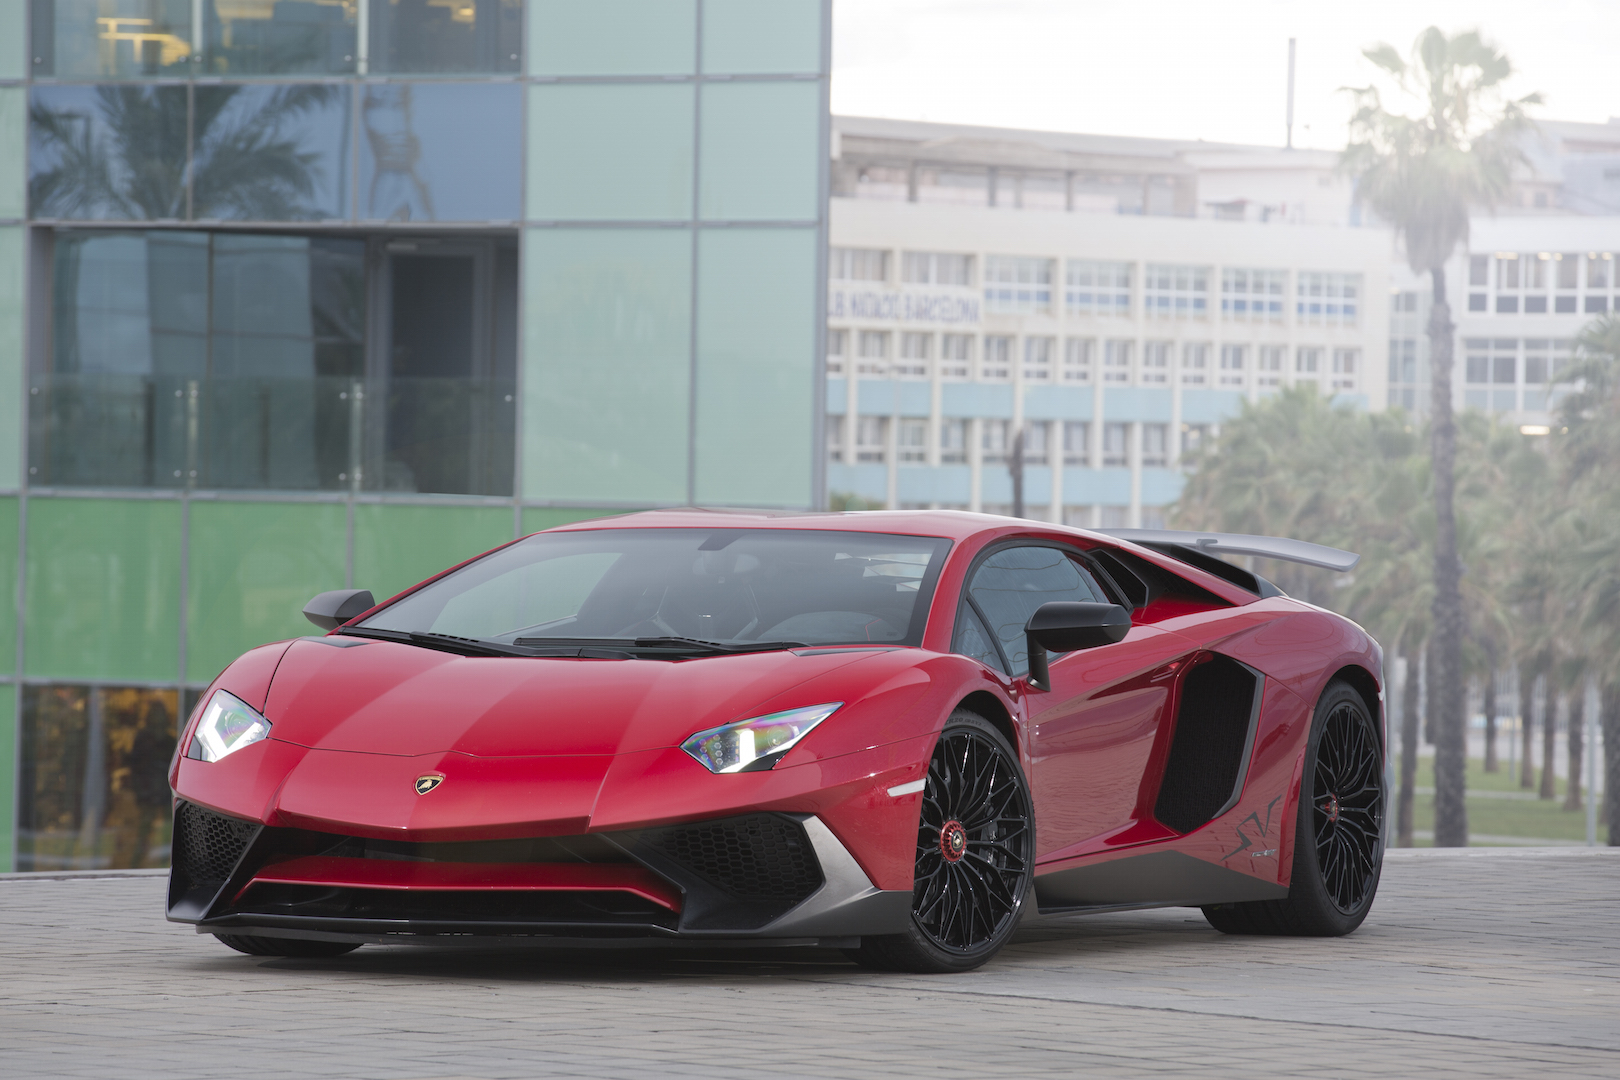 Used Porsche San Antonio >> New and Used Lamborghini Aventador: Prices, Photos, Reviews, Specs - The Car Connection